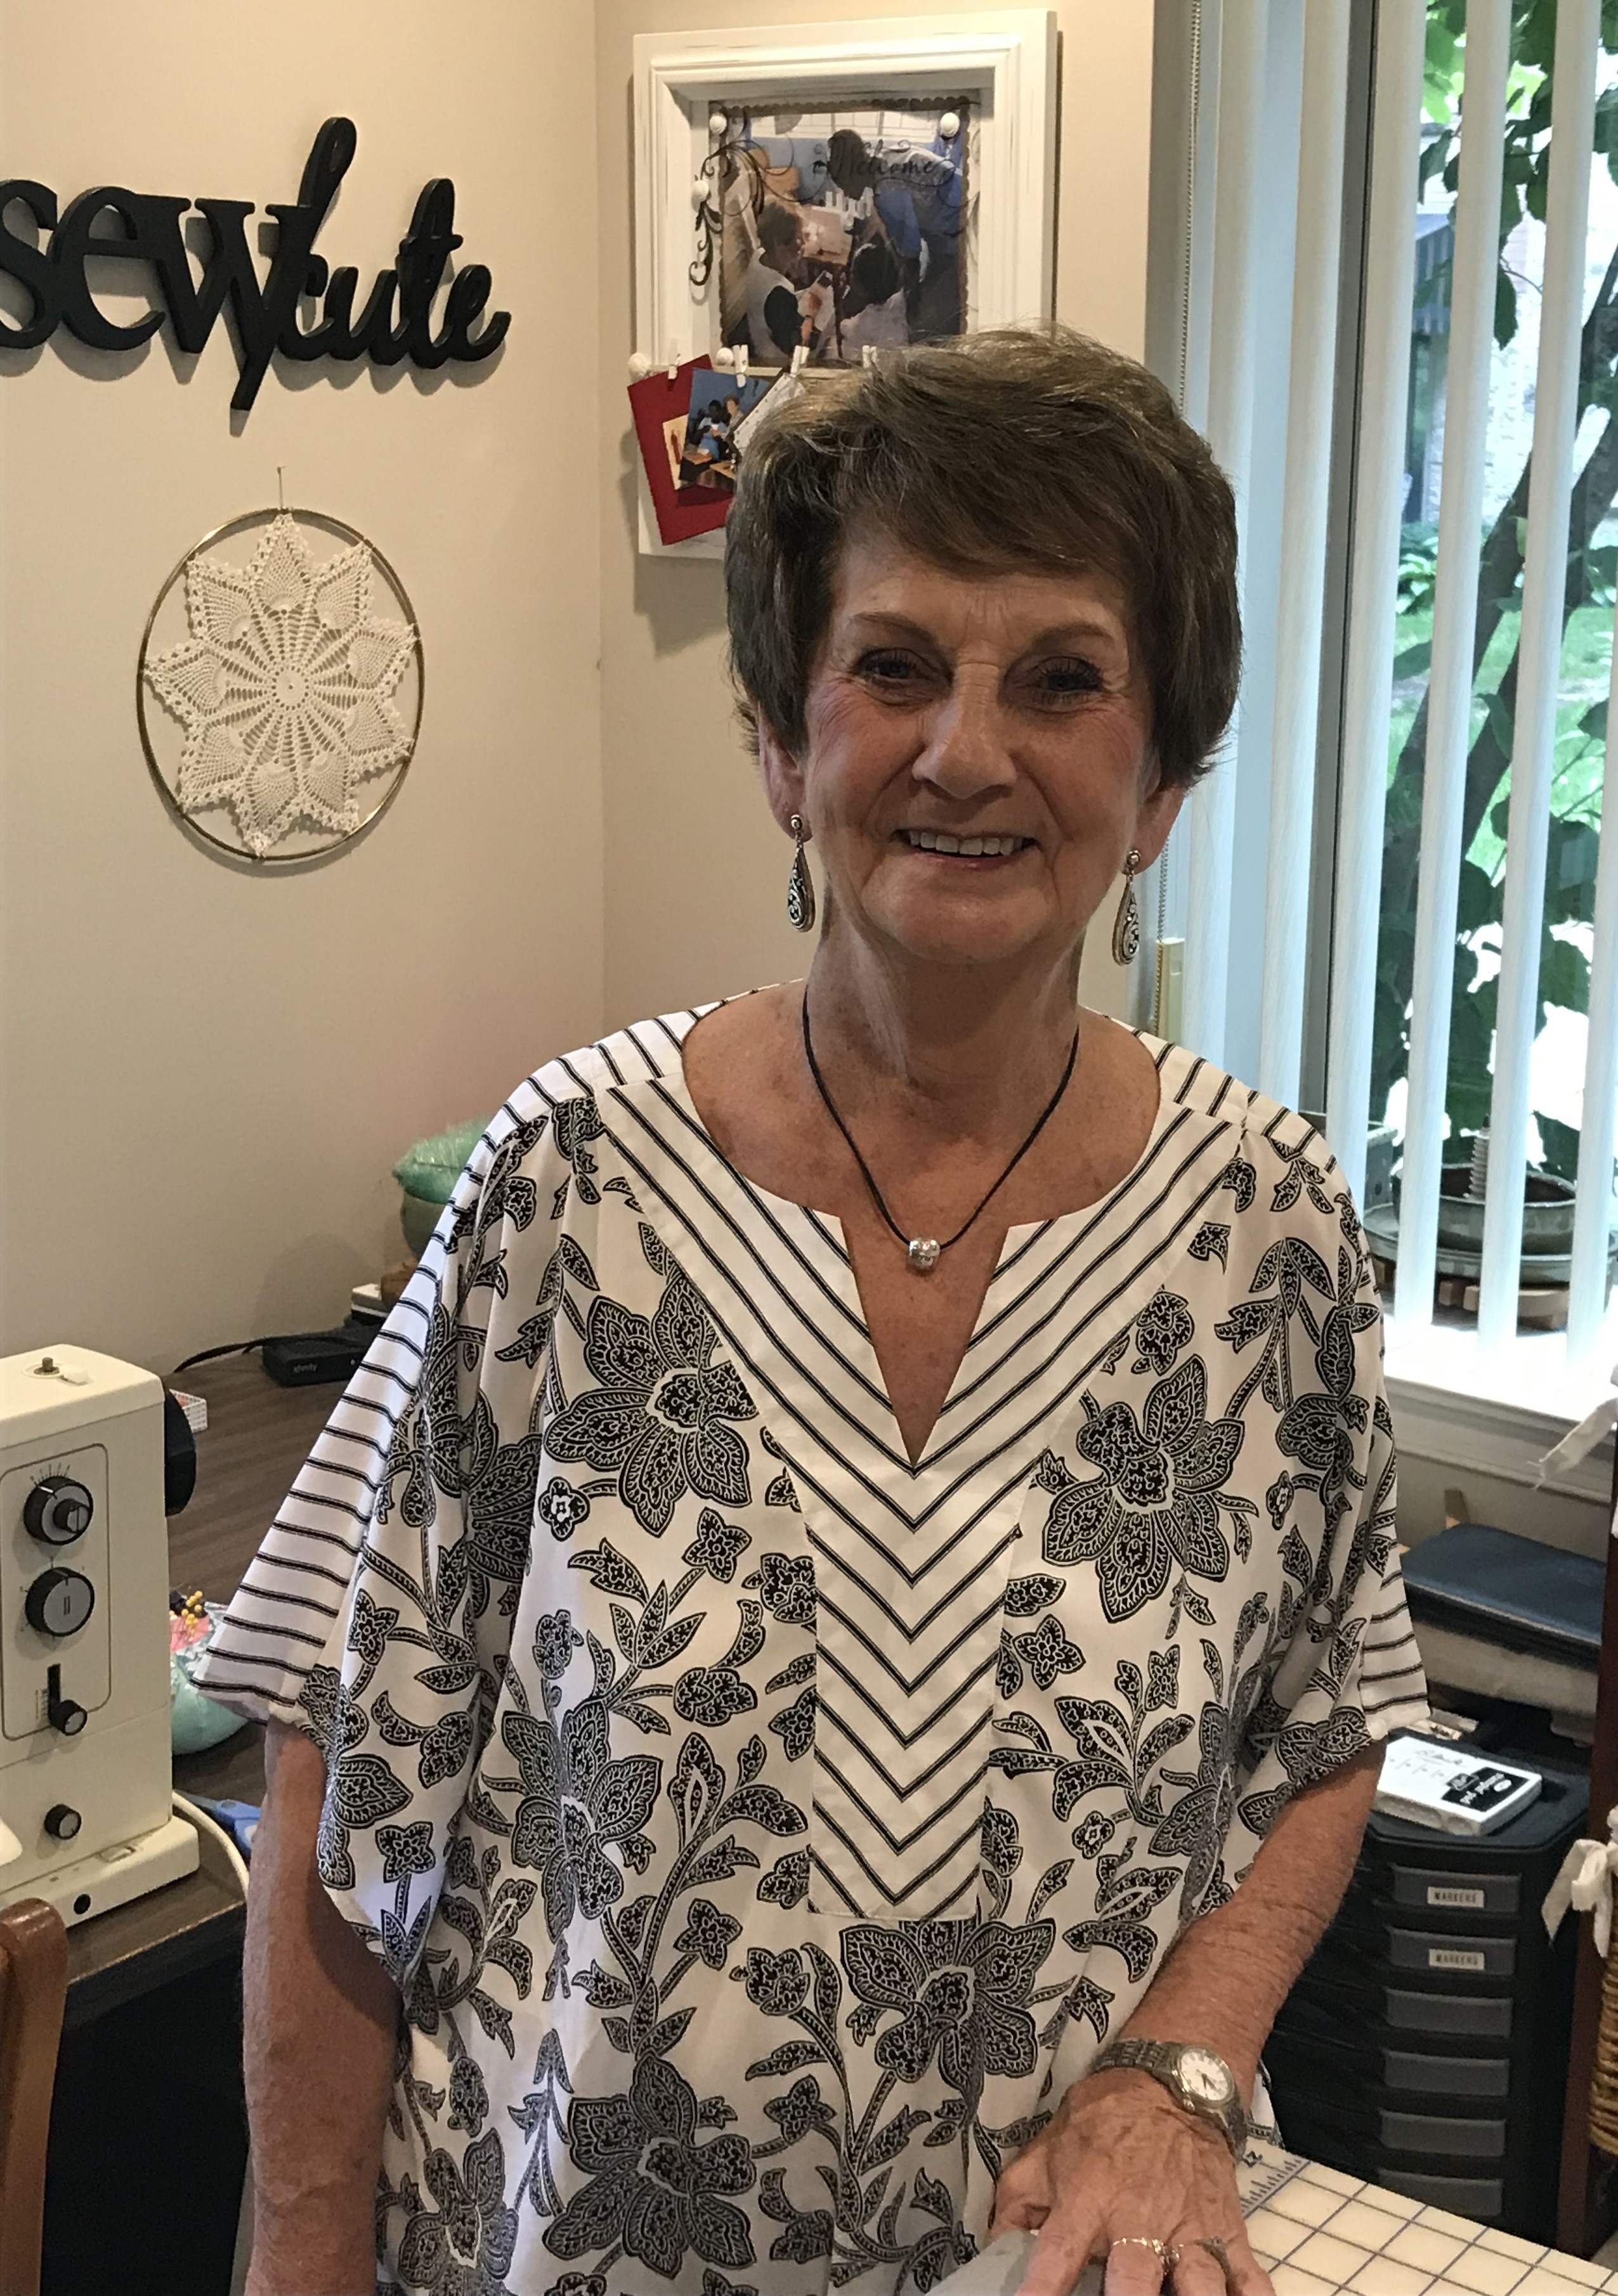 Martie Noel, a resident of Oak Crest, is photographed in the sewing room of her apartment home.